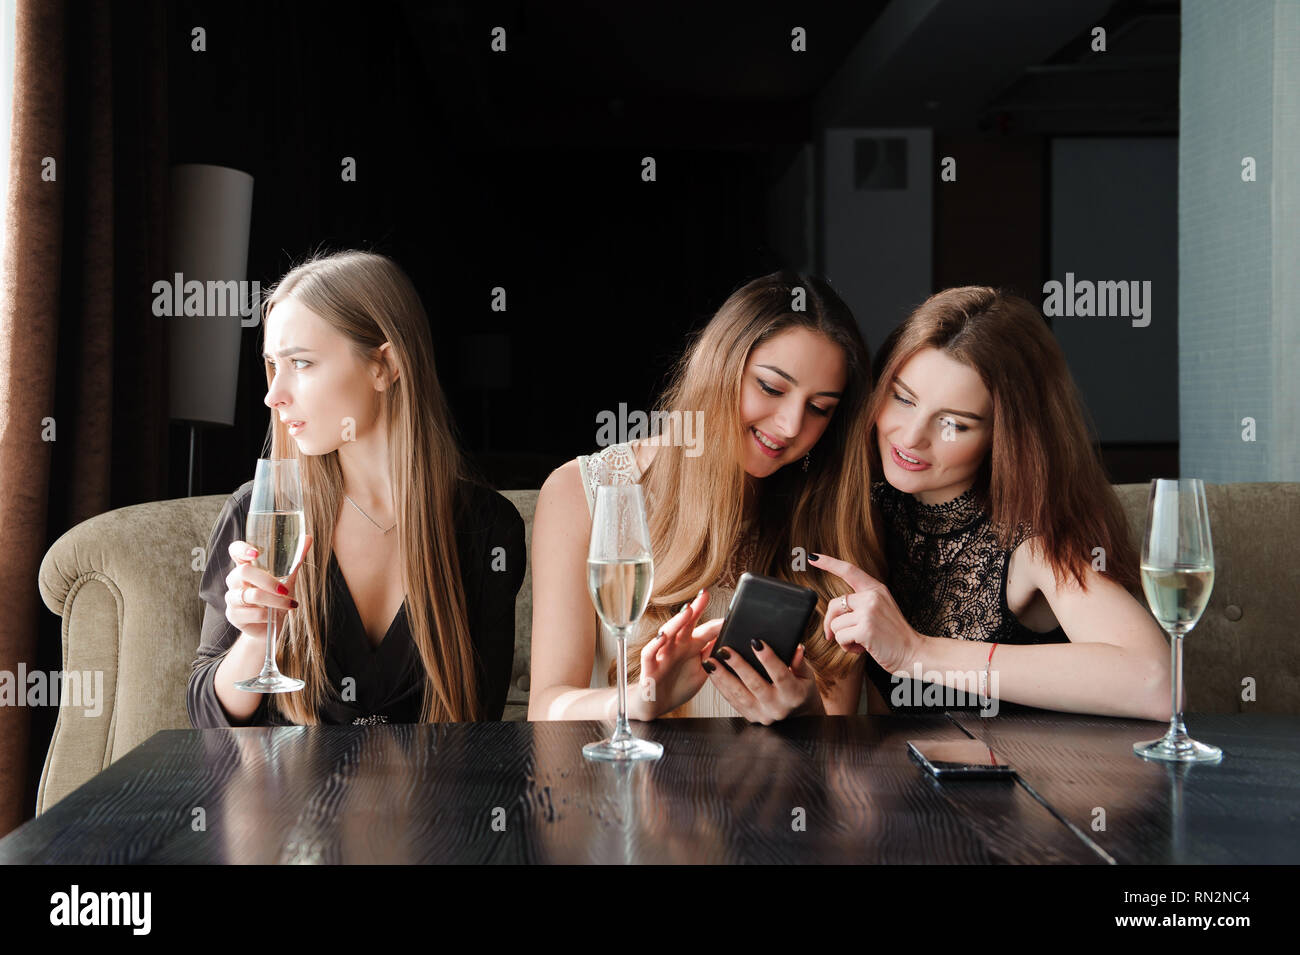 always connected, internet addiction, young girls in cafe Stock Photo